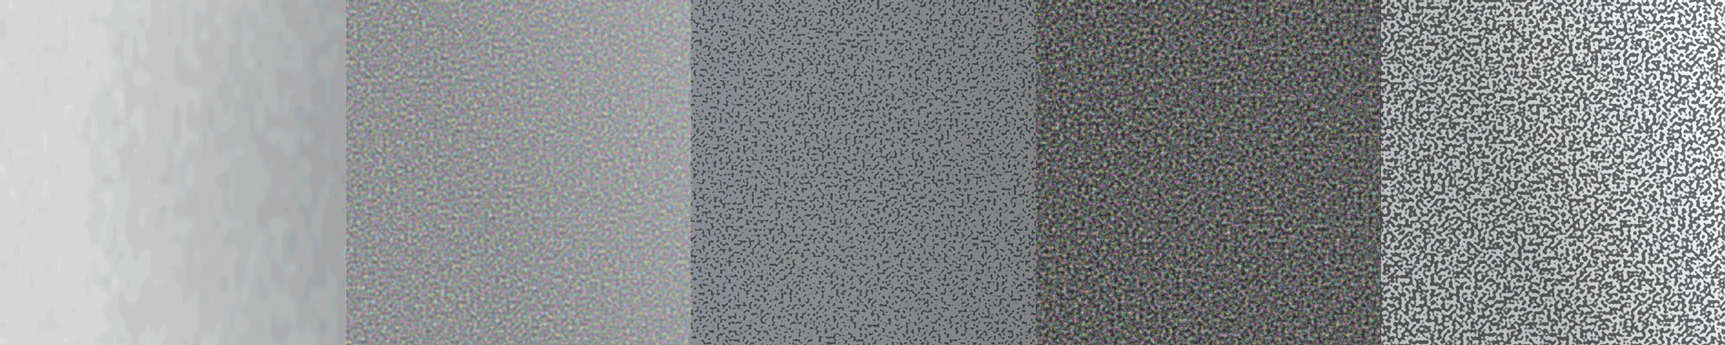 static textures